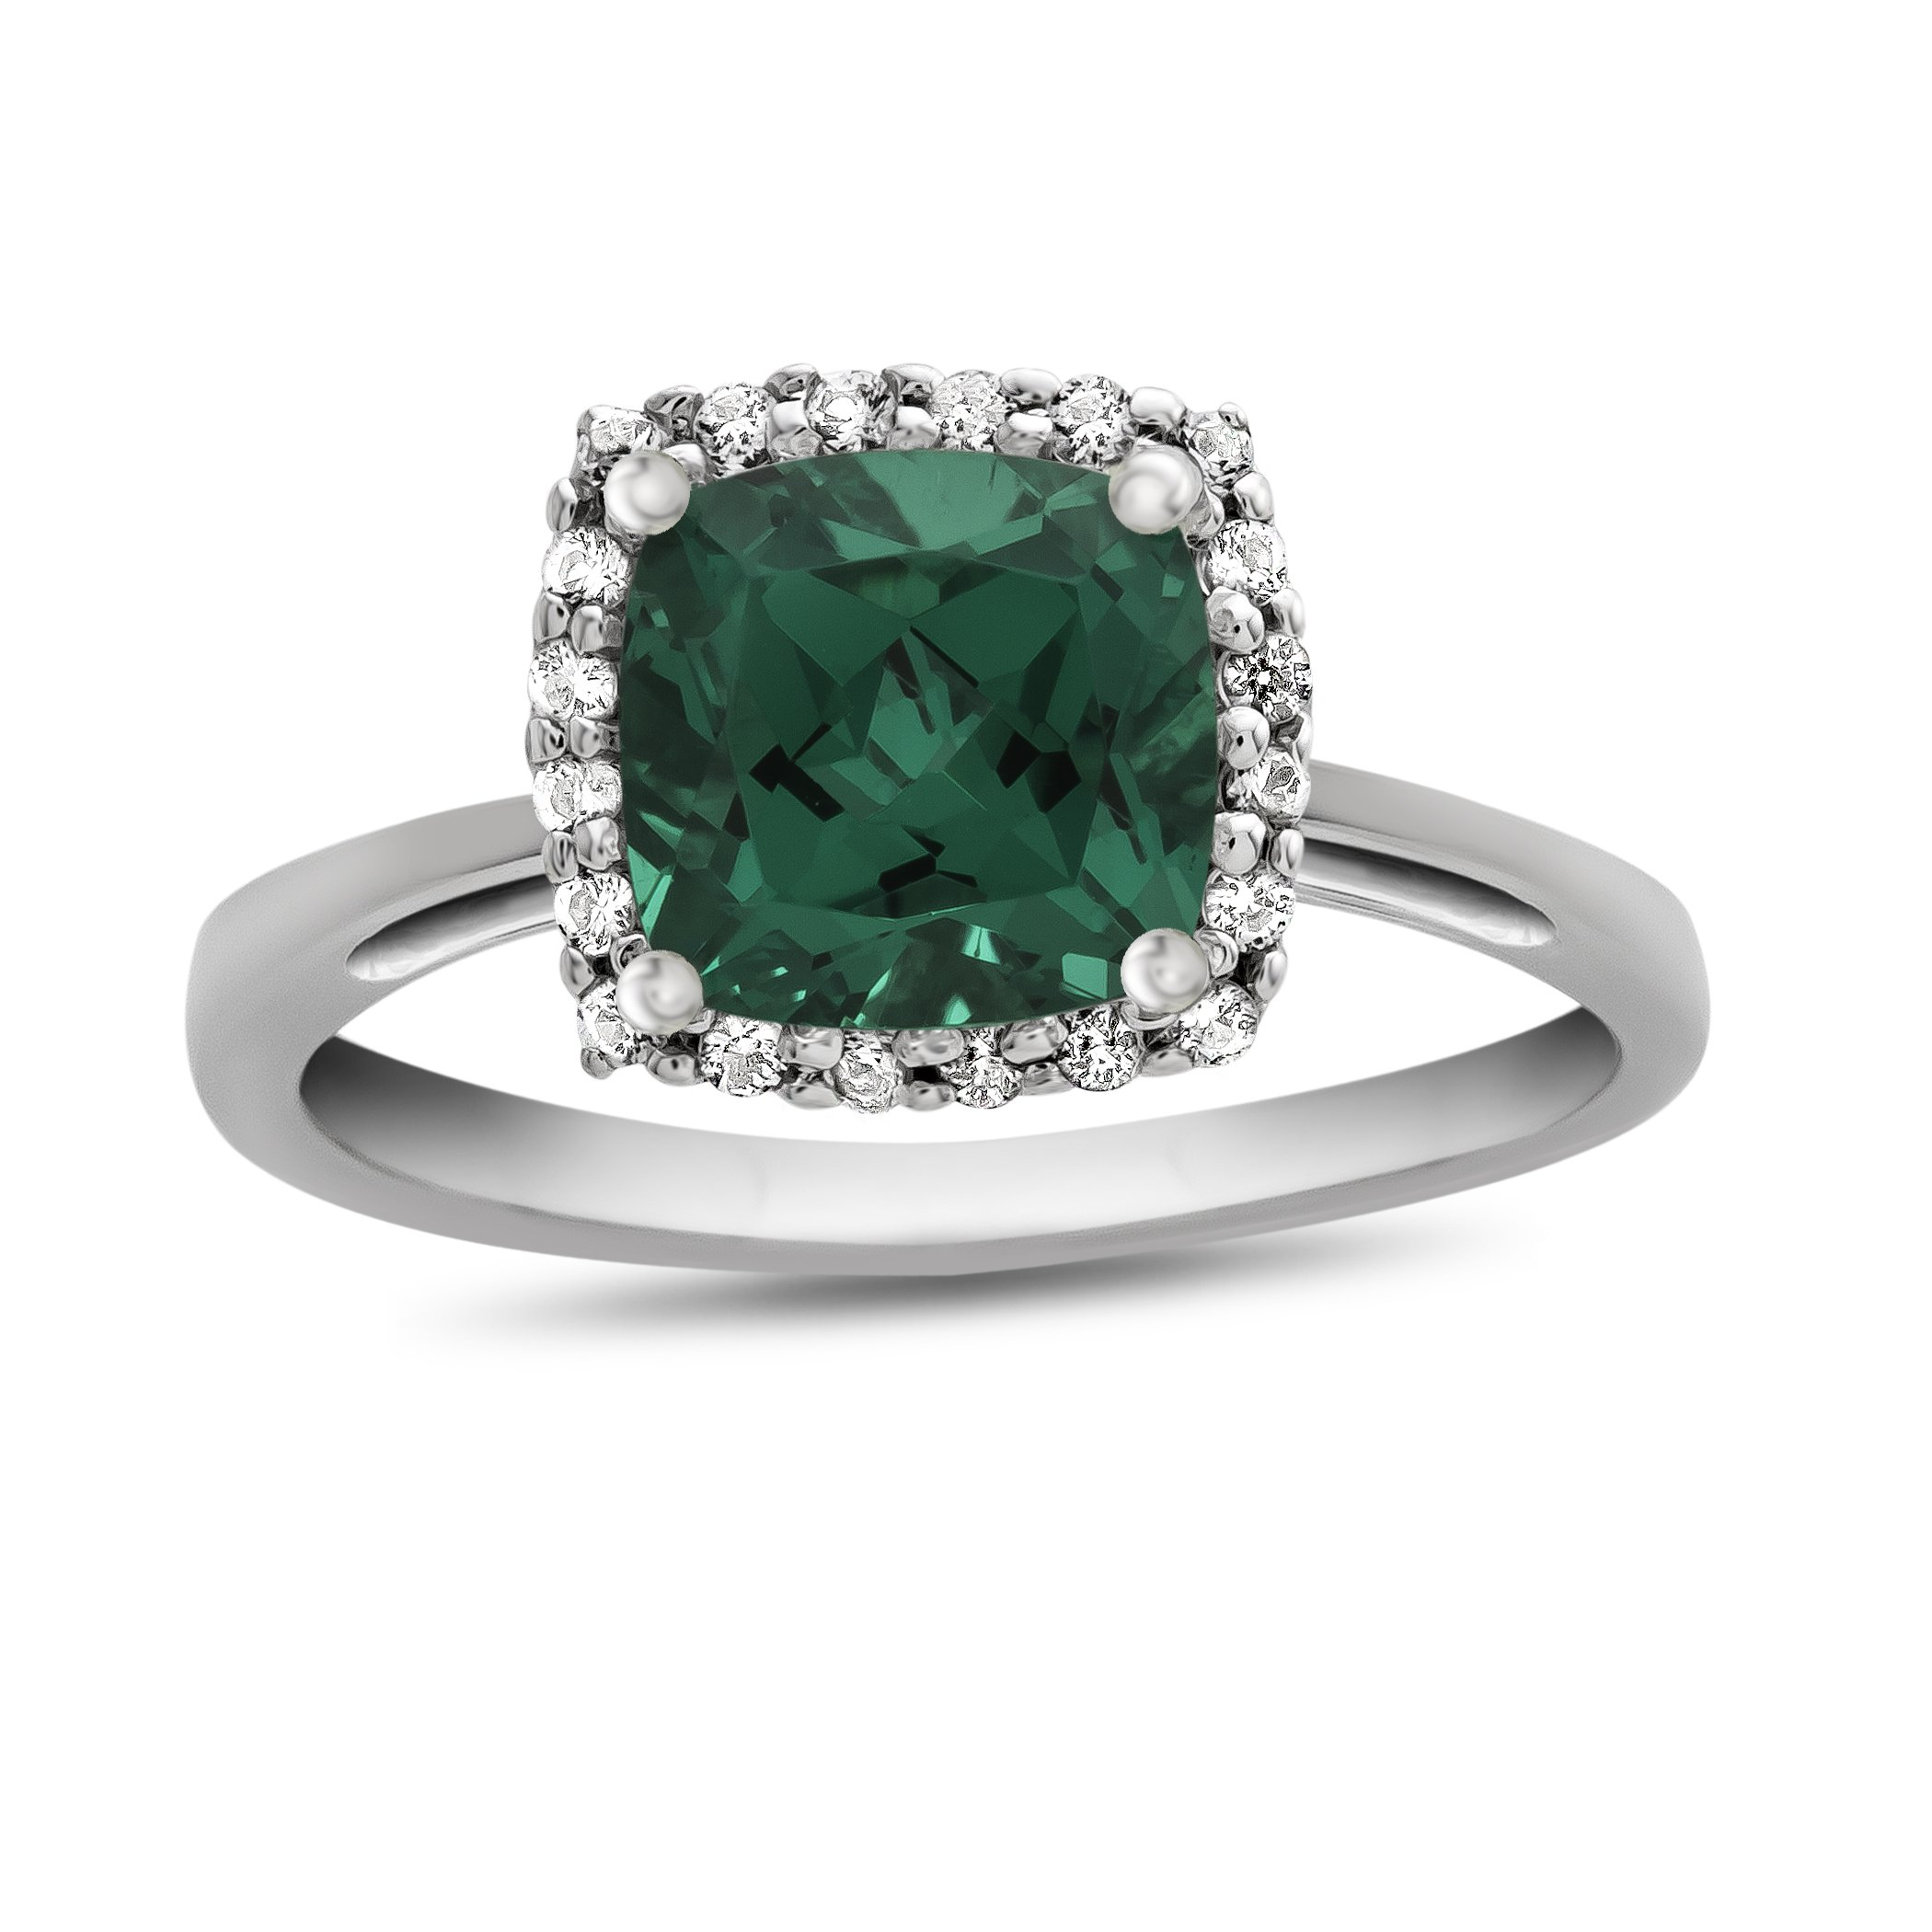 10k White Gold 6mm Cushion Simulated Emerald with White Topaz accent stones Halo Ring Size 7